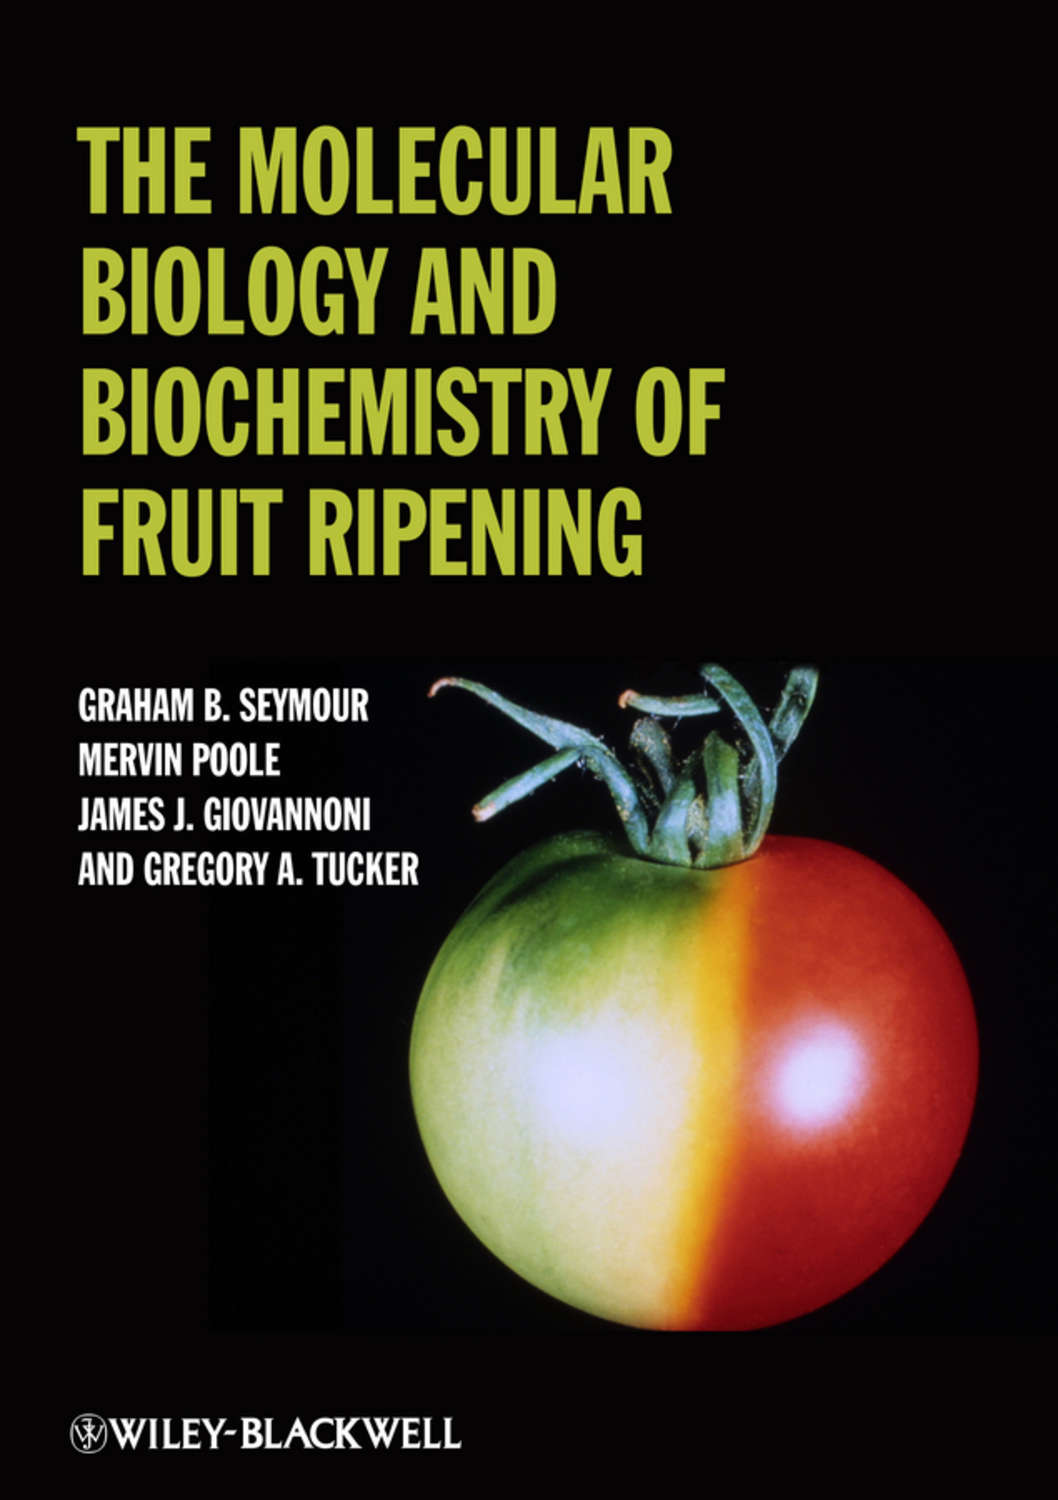 biology green fruit ripening experiment A fruit will sometimes signal it to ripen, as will an infection of bacteria or fungi on the fruit this ethylene signal causes developmental changes that result in fruit ripening.